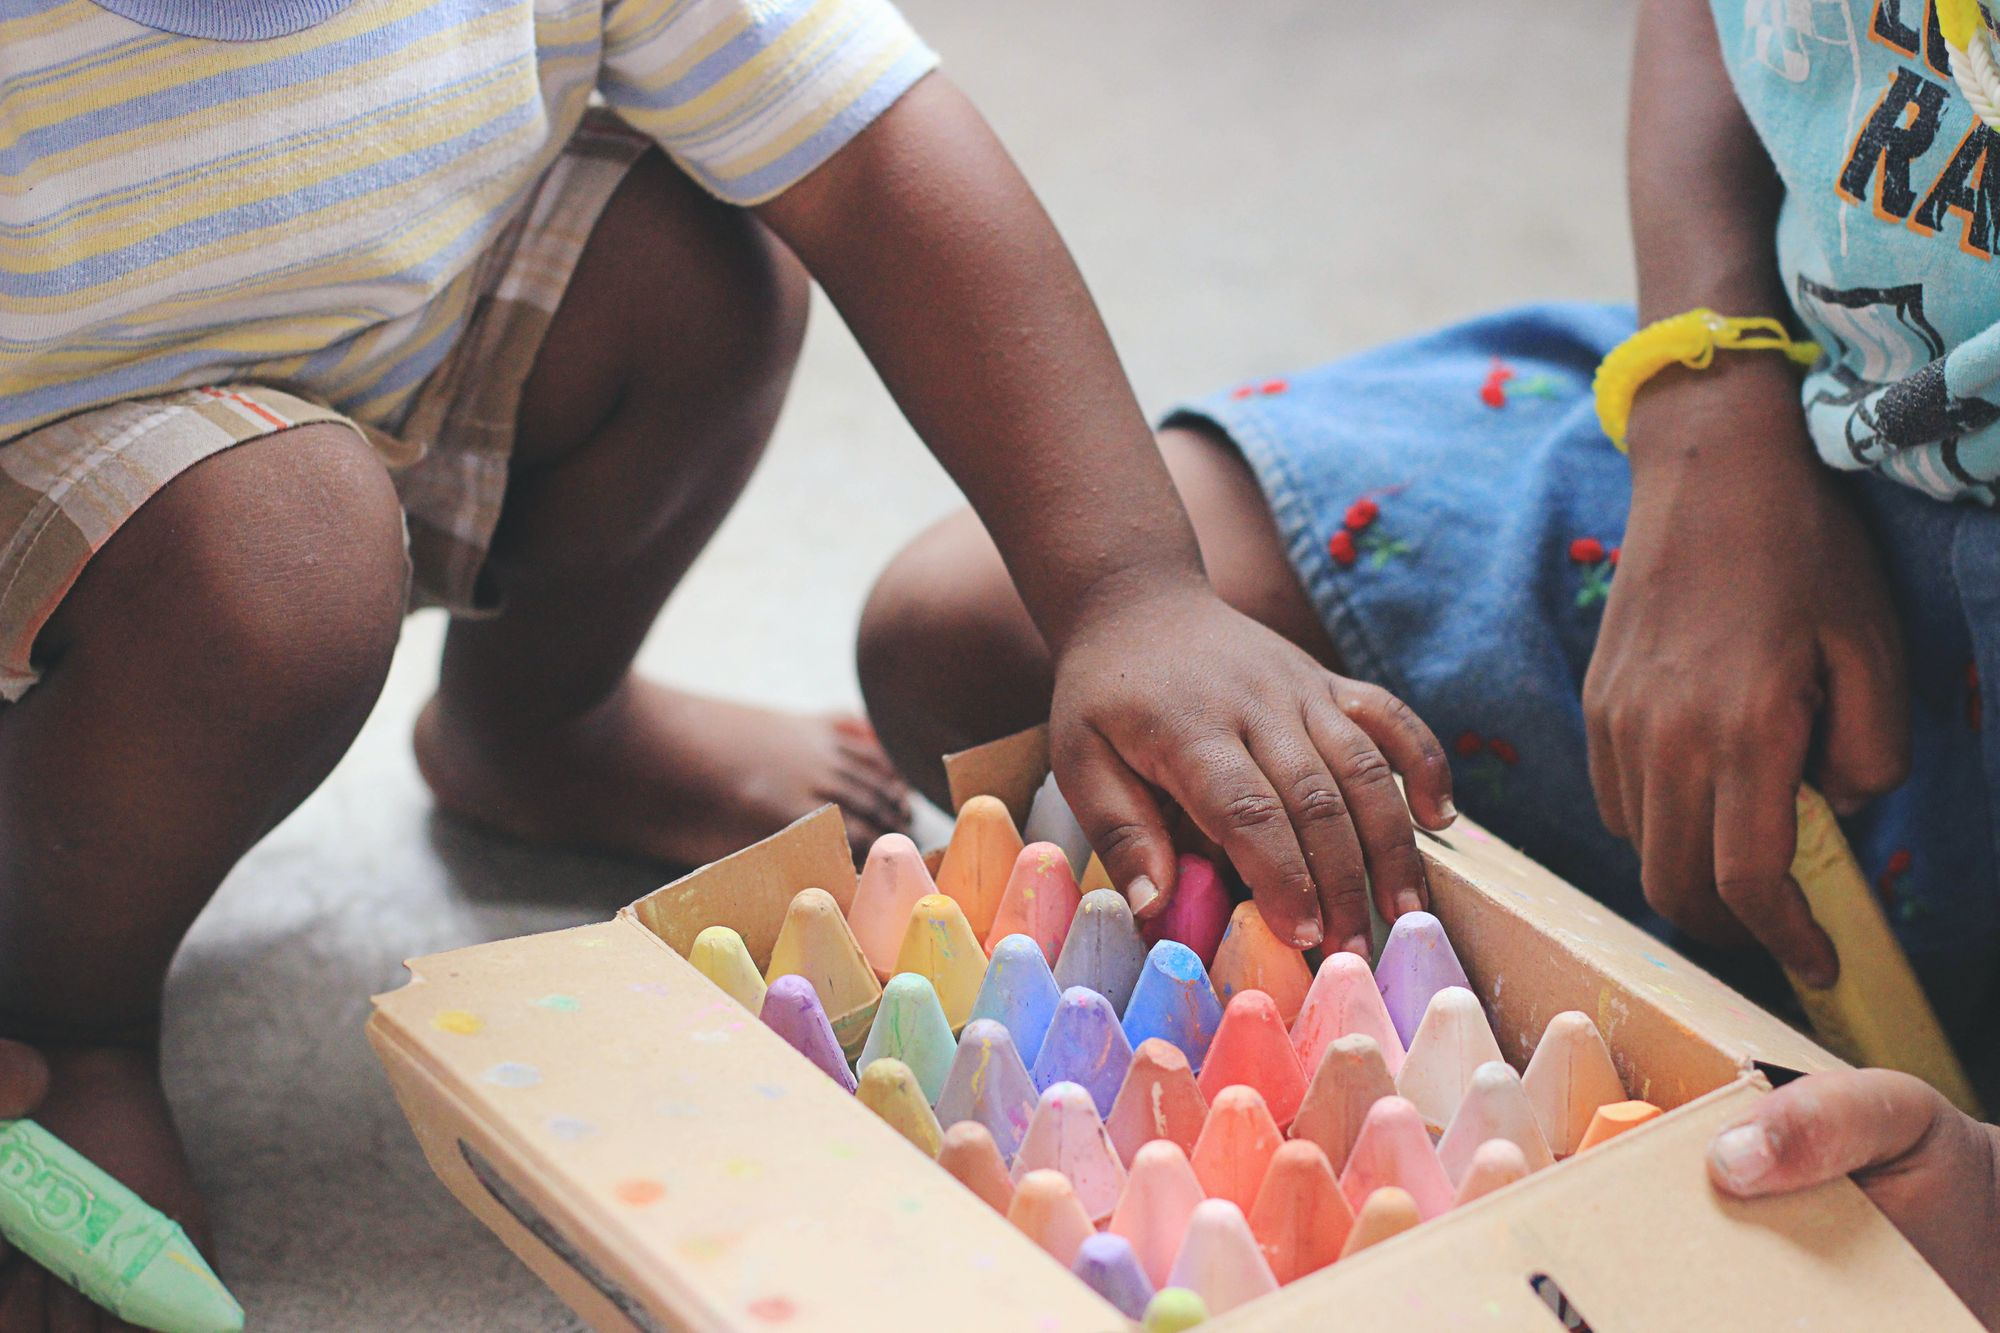 Children playing with coloring pencils